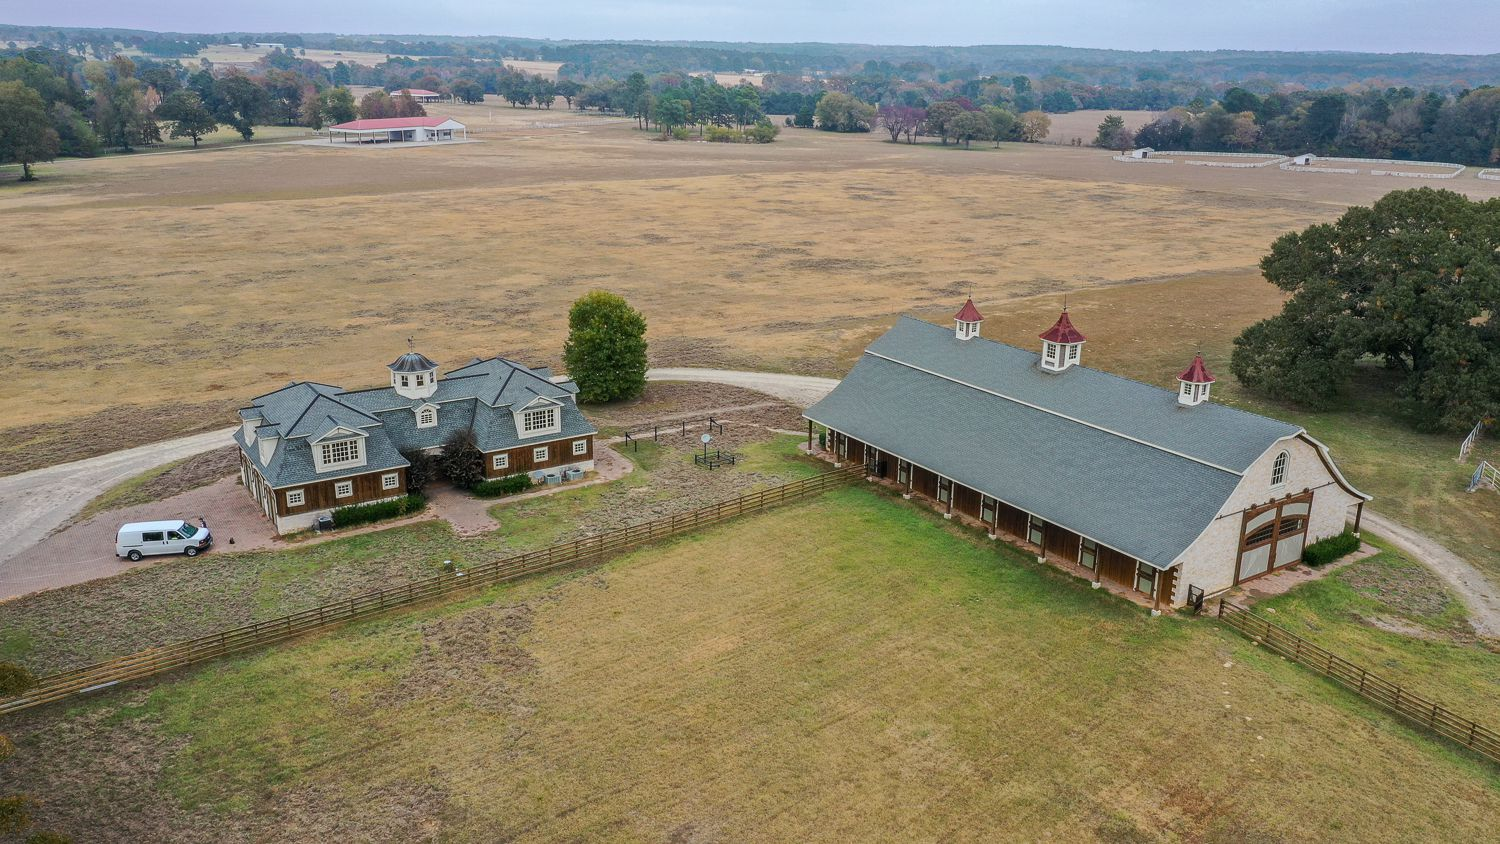 There are several garages and barns on the ranch.